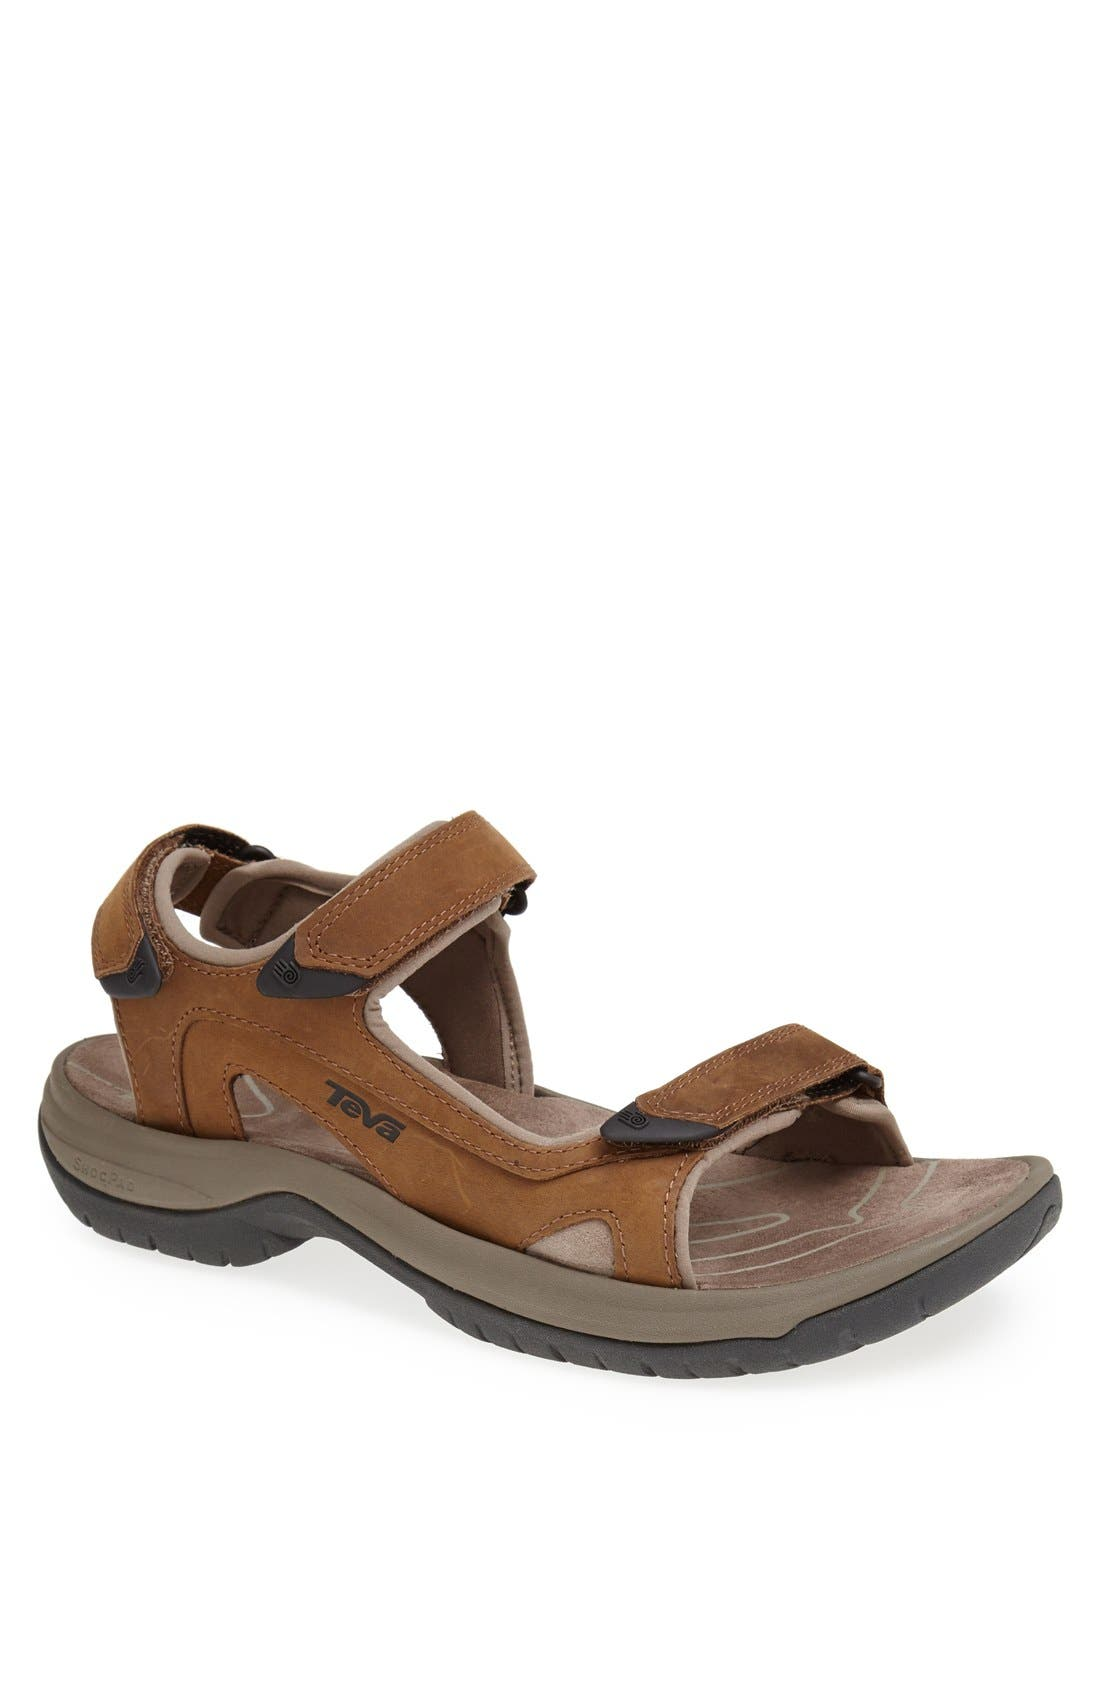 Alternate Image 1 Selected - Teva 'Jetter' Sandal (Men)